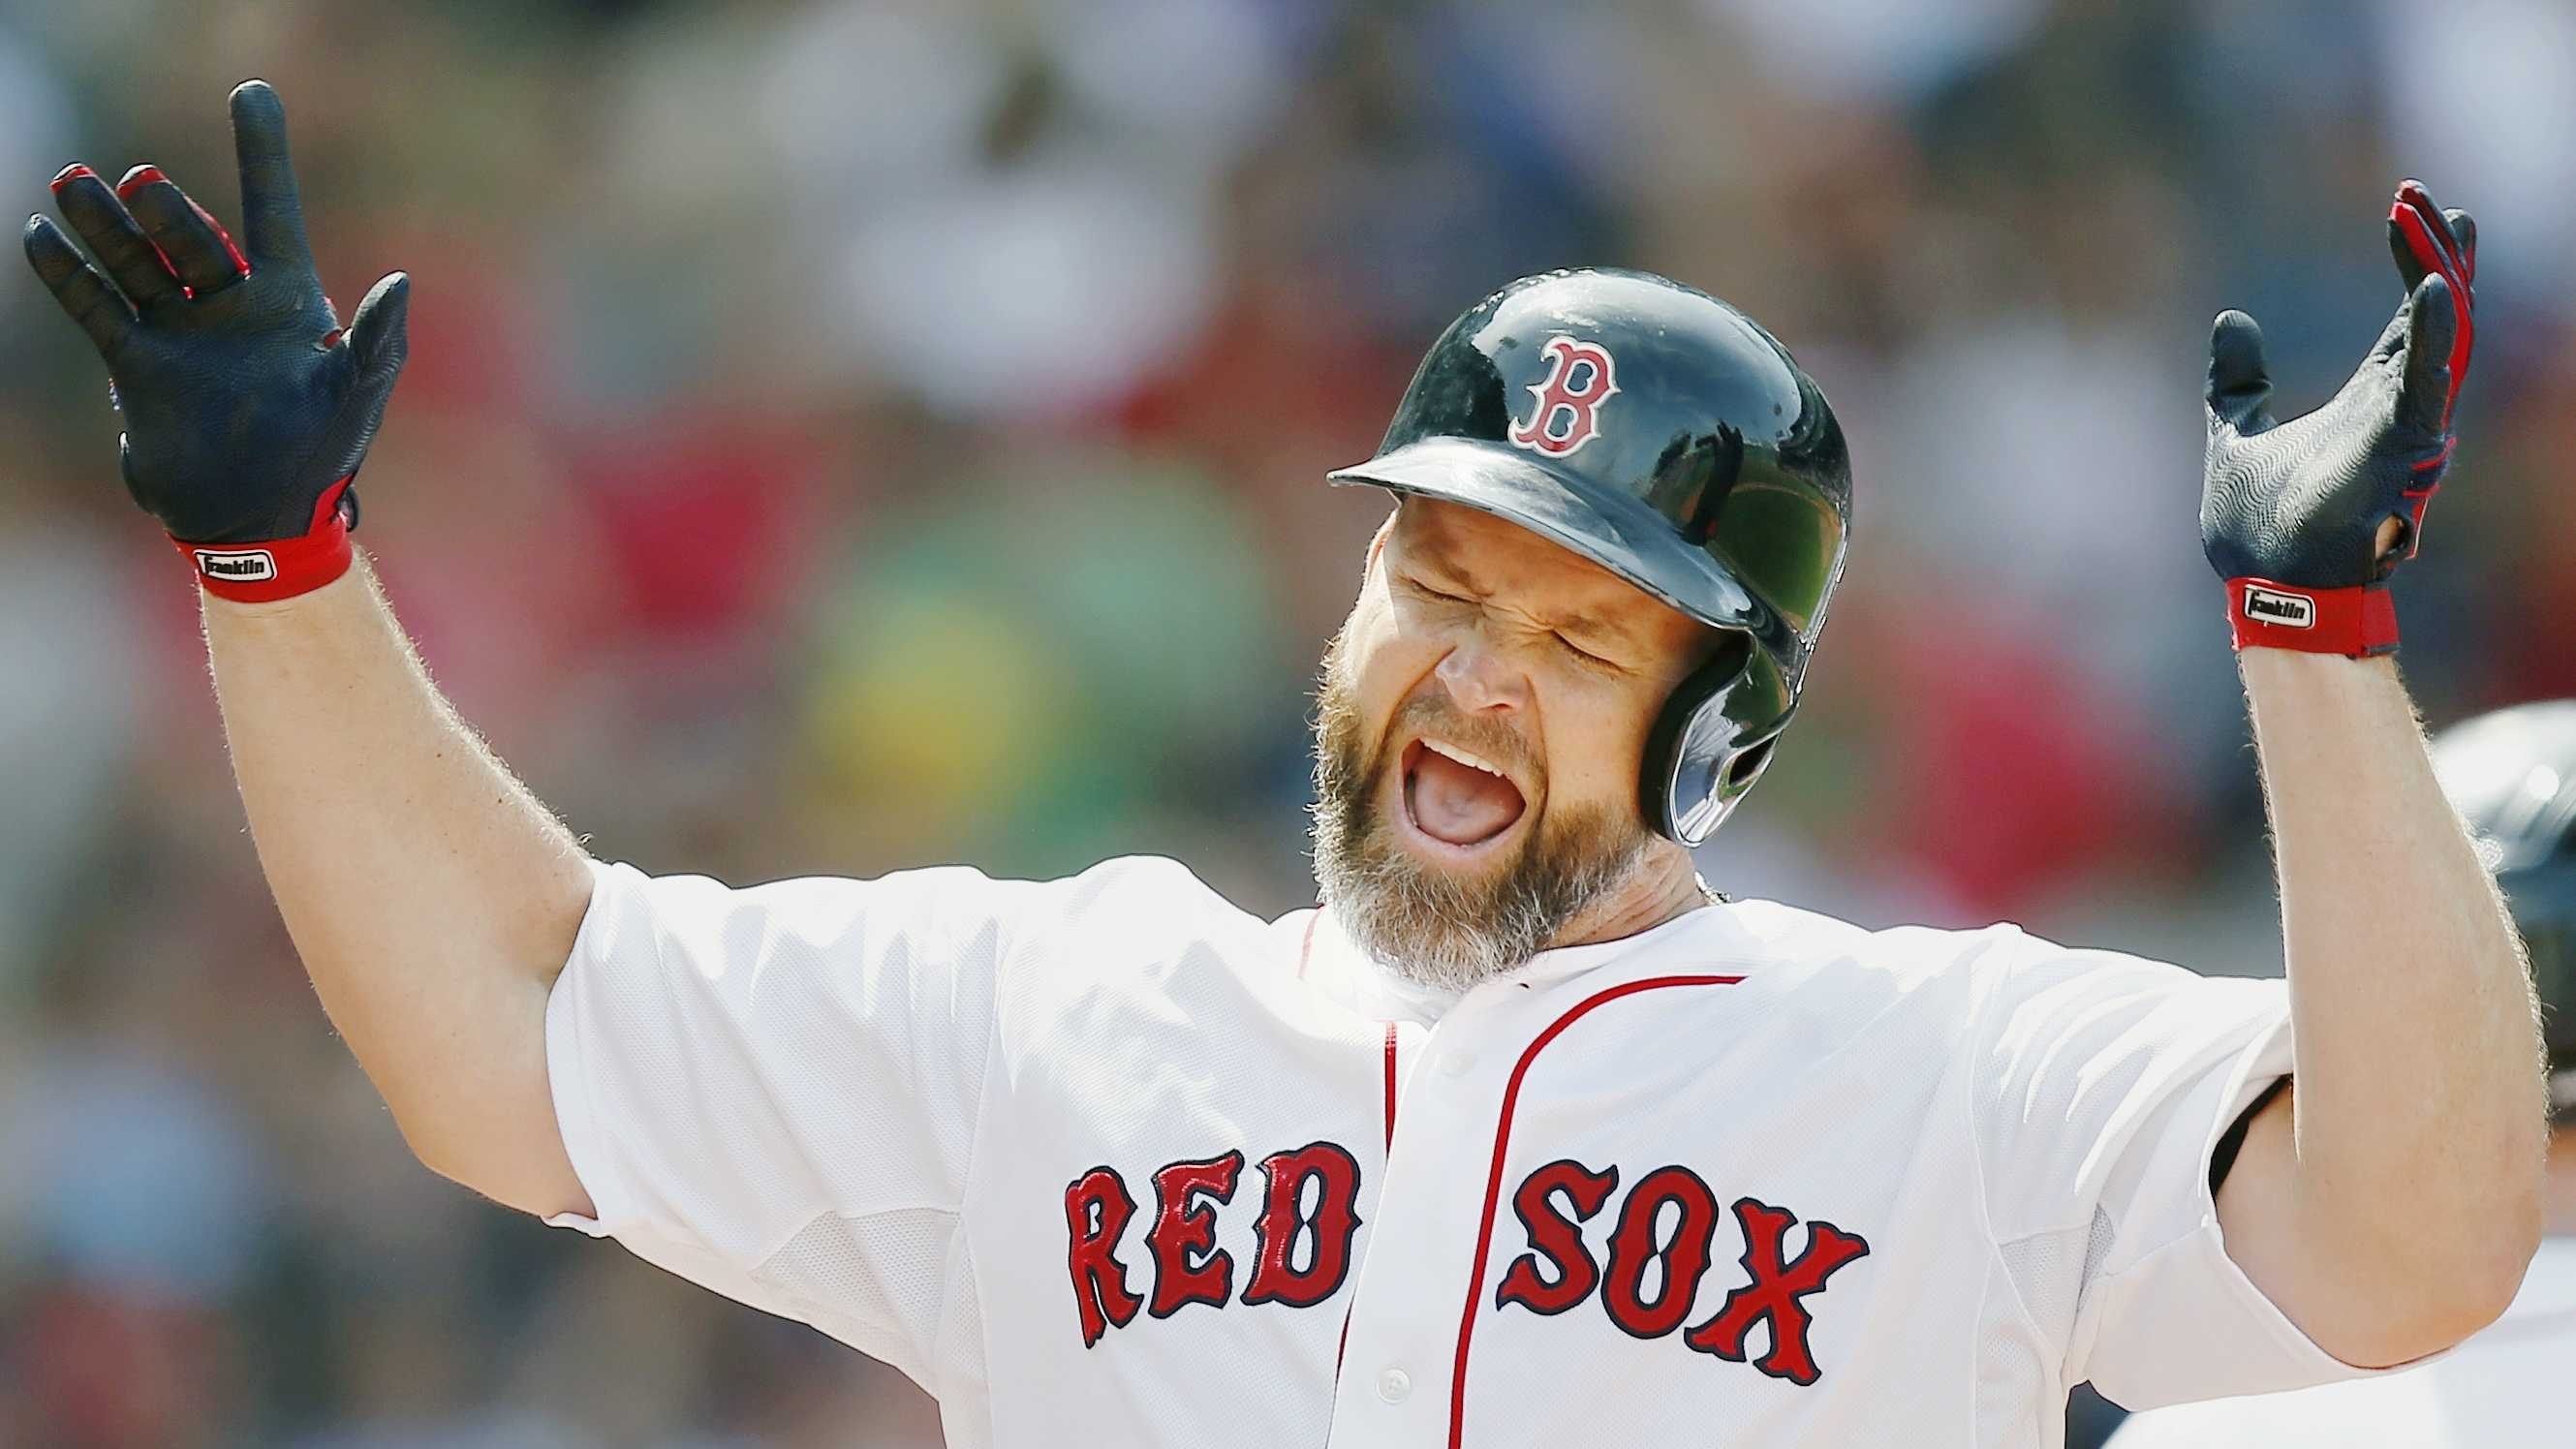 Boston Red Sox's David Ross celebrates his two-run home run during the fourth inning of a baseball game against the Kansas City Royals in Boston, Sunday, July 20, 2014. (AP Photo/Michael Dwyer)